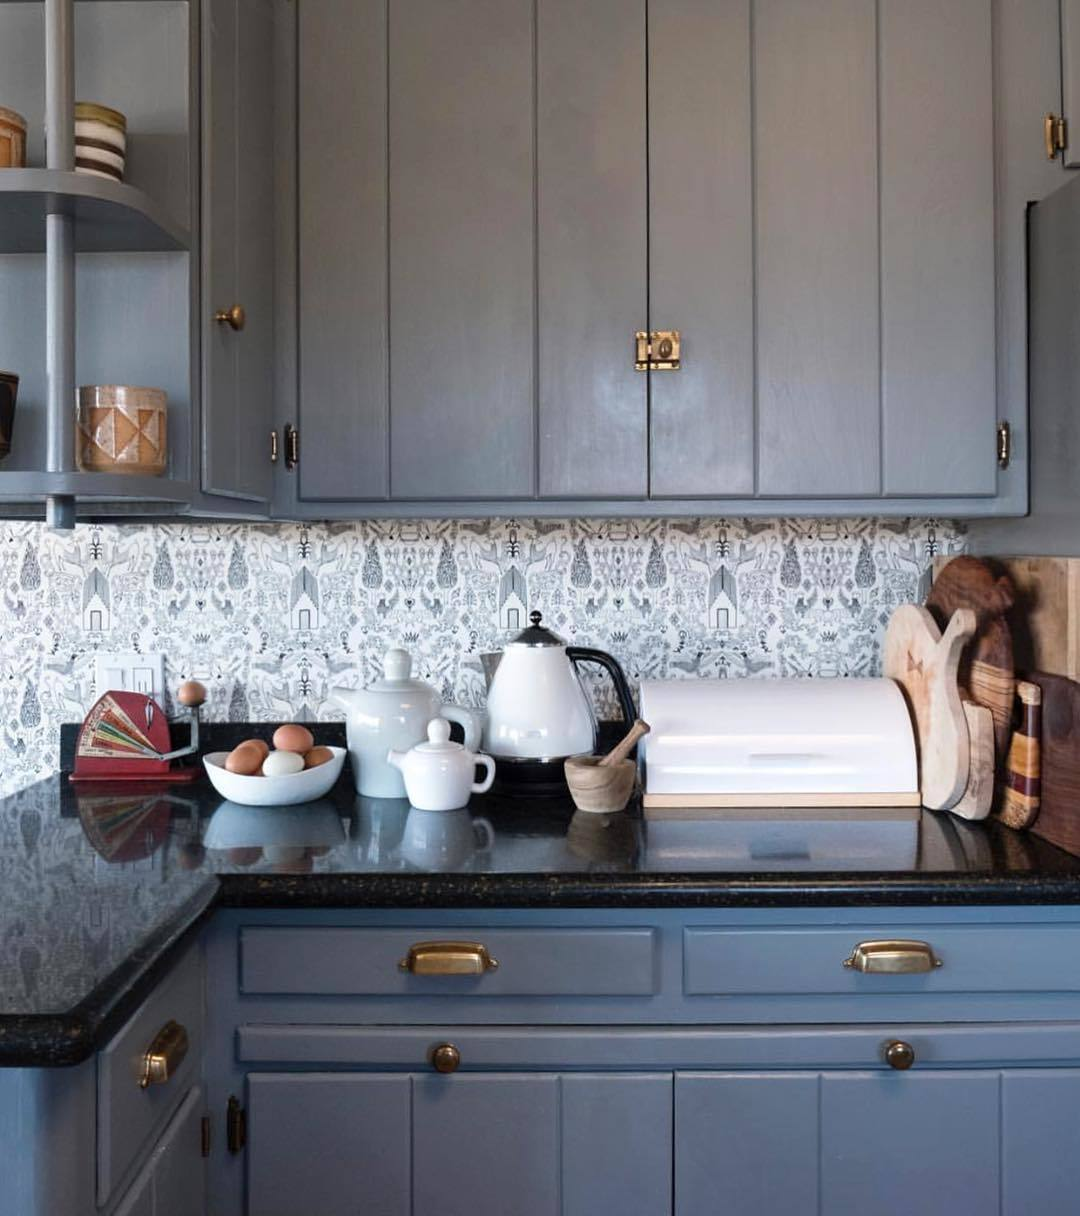 Our Favorite Patterns for the Kitchen | Nethercote Black wallpaper | Julia Rothman | Hygge & West